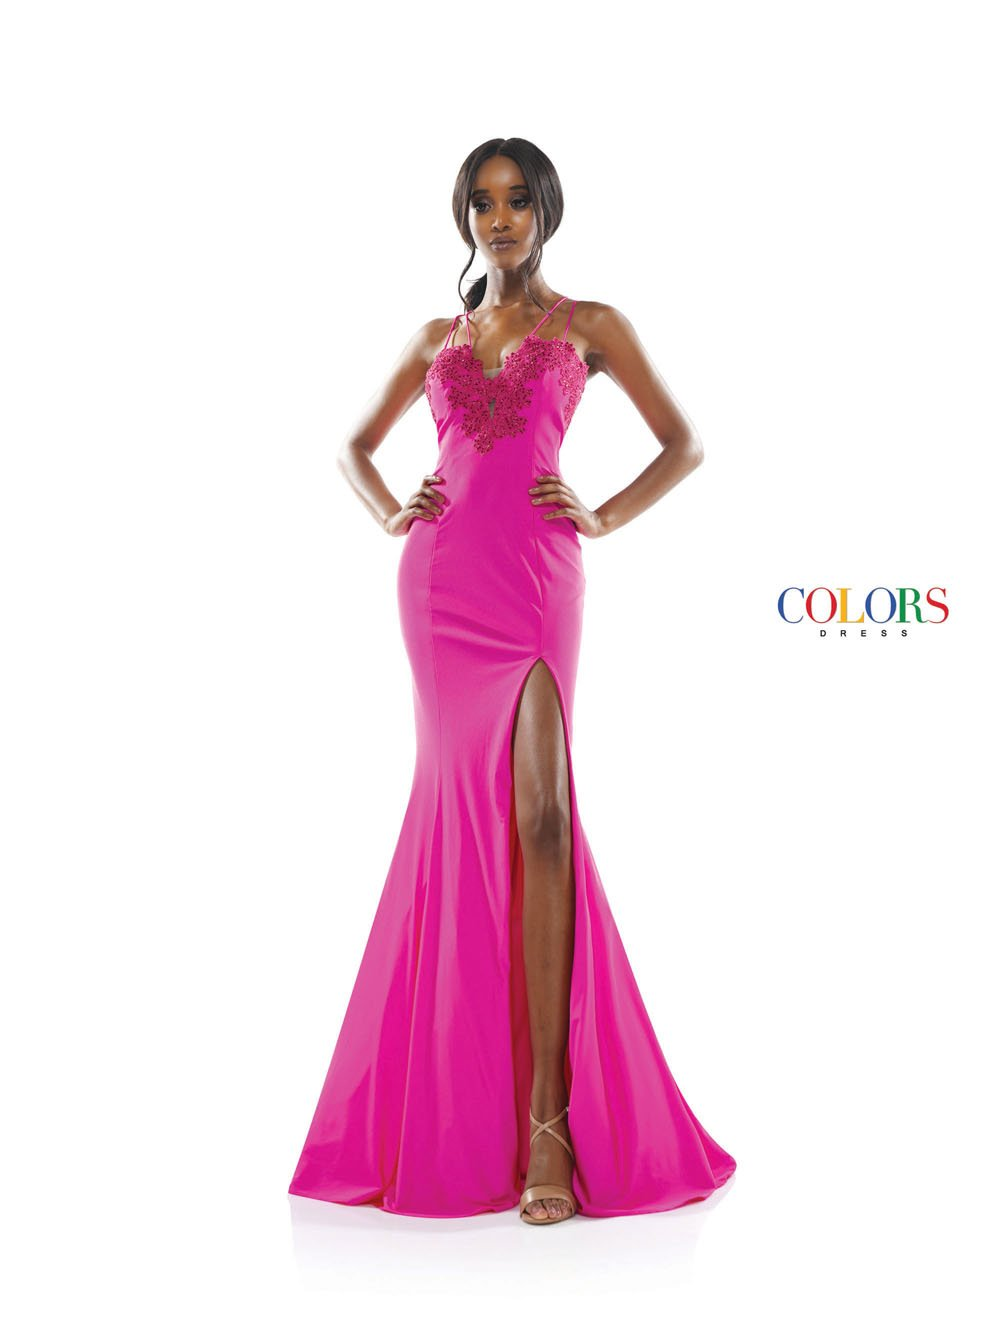 Colors Dress 2302 prom dress images.  Colors 2302 dresses are available in these colors: Hot Pink, Royal, Bright Yellow.